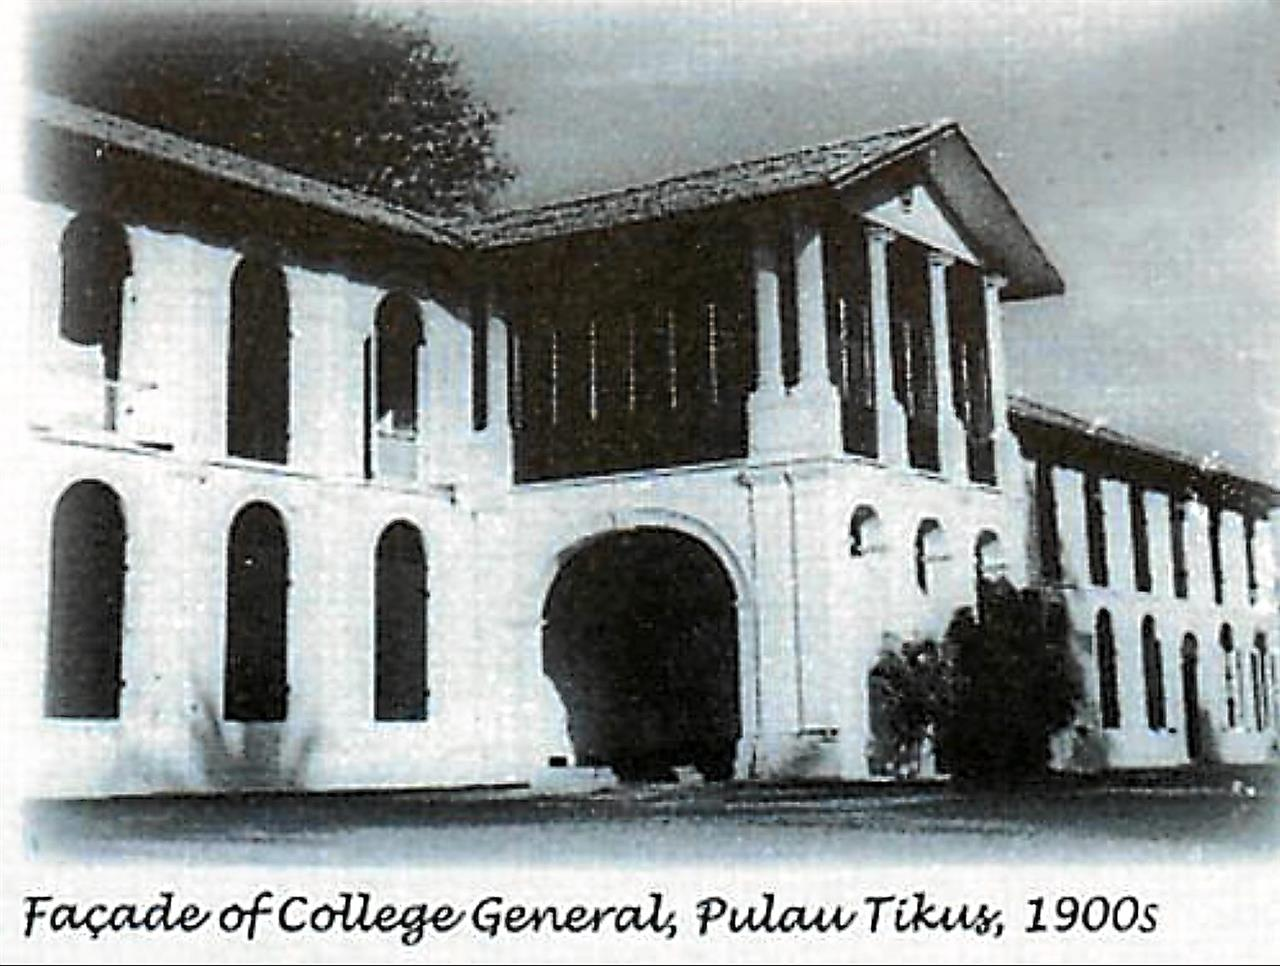 A facade of College General's first site in Penang located in Pulau Tikus. It remained there for 176 years before moving to Mariophile in Tanjung Bungah in 1984.